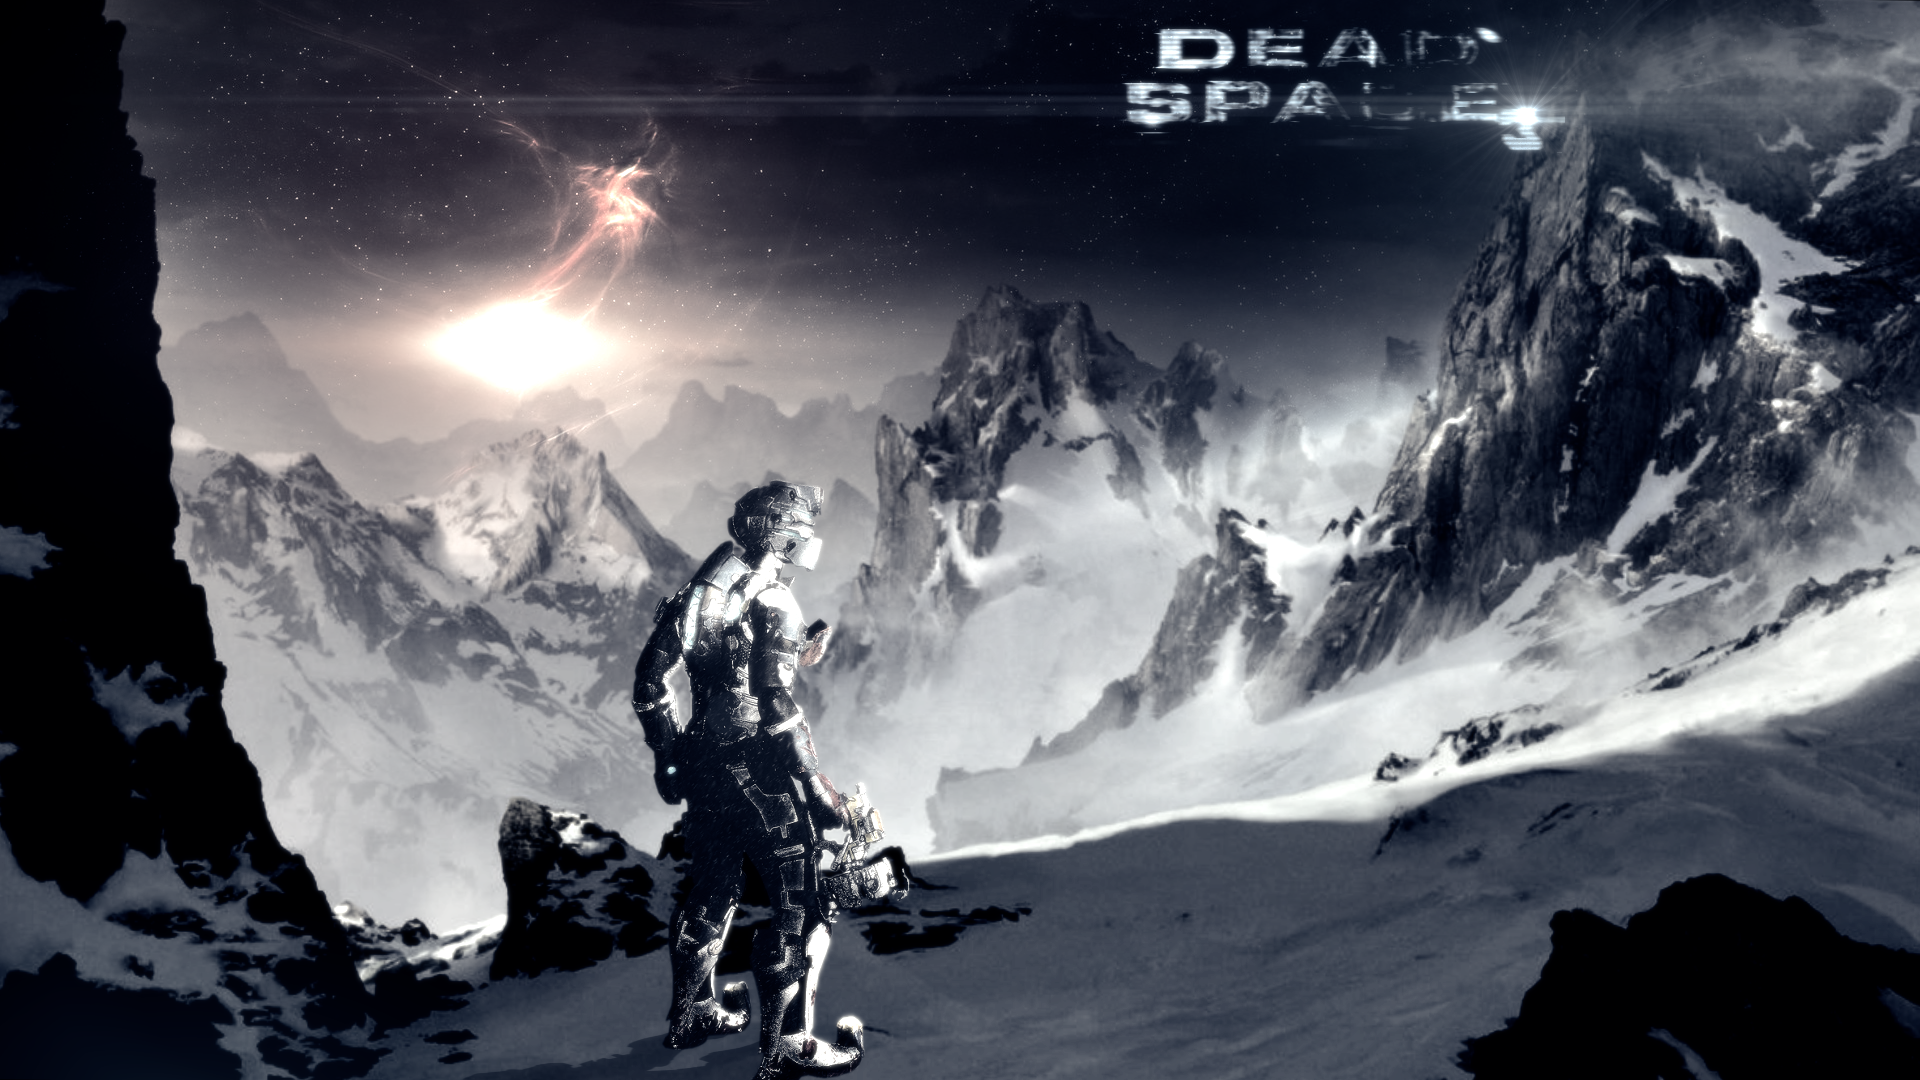 Urbanator 654 99 Dead Space 3 Mountains By GenerationK1LL